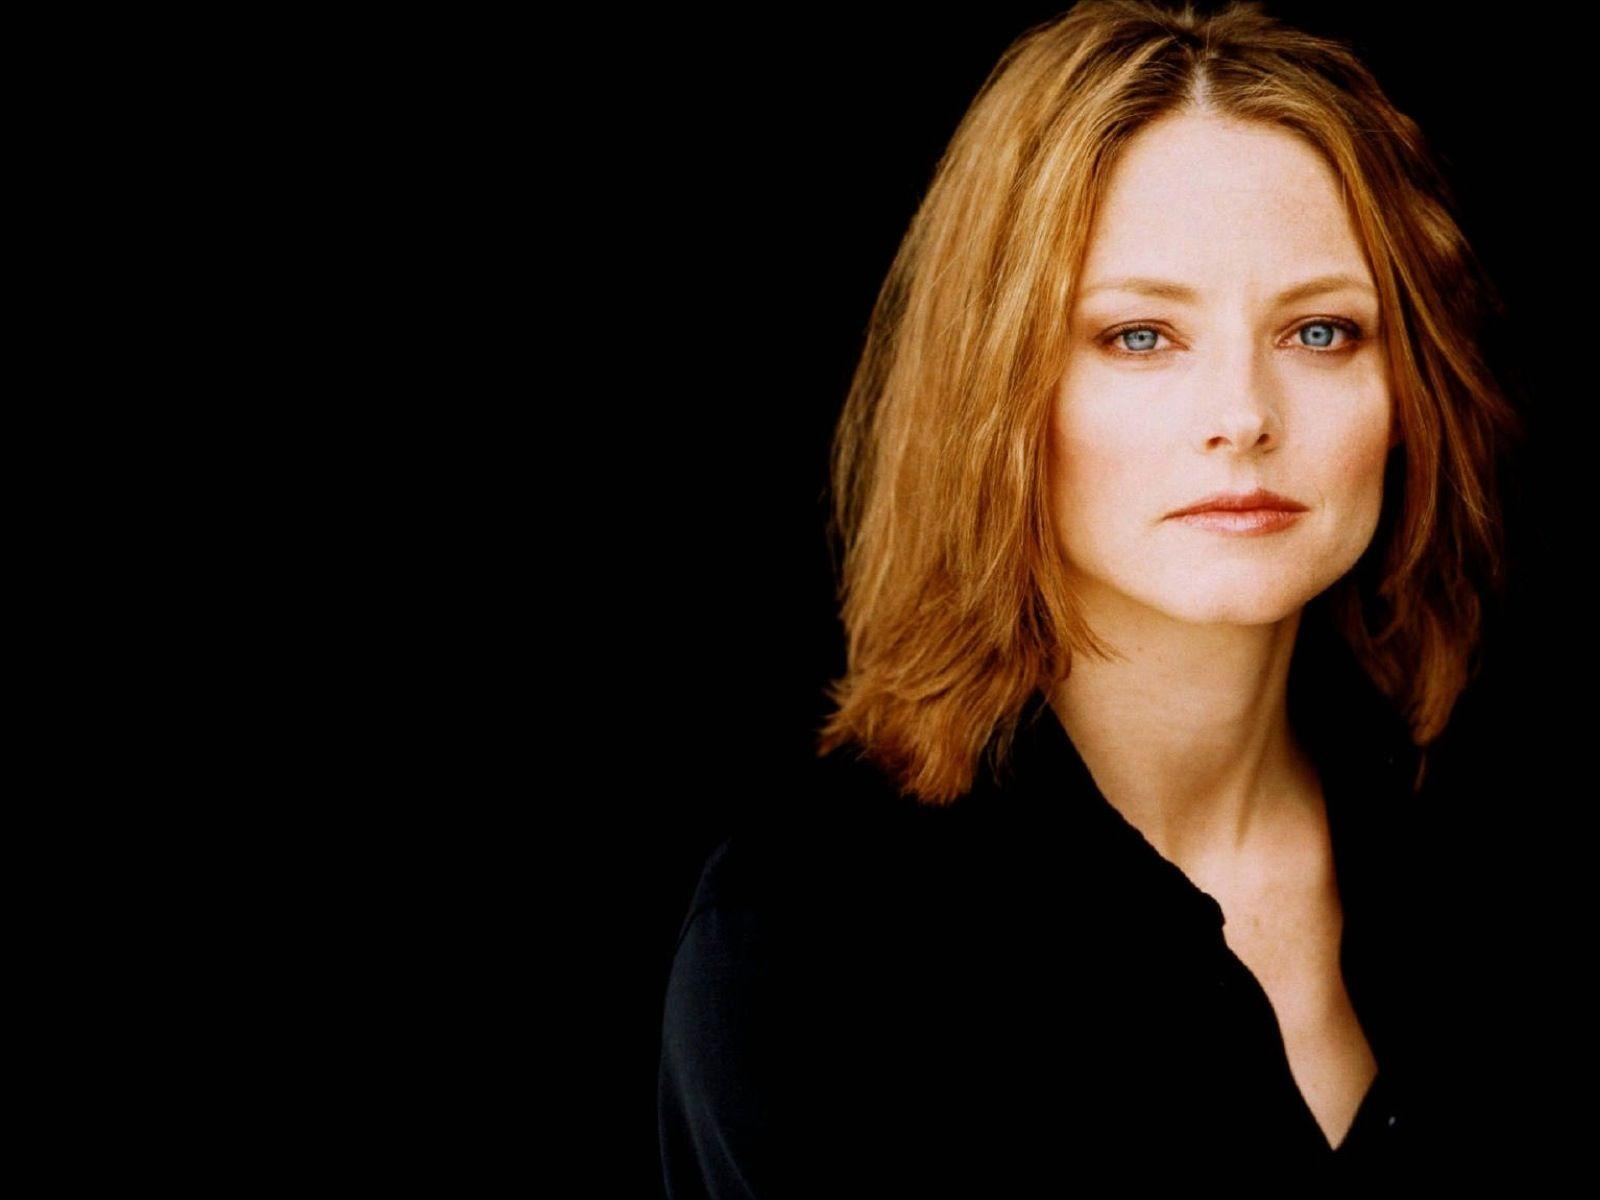 Image result for Jodie Foster wallpaper